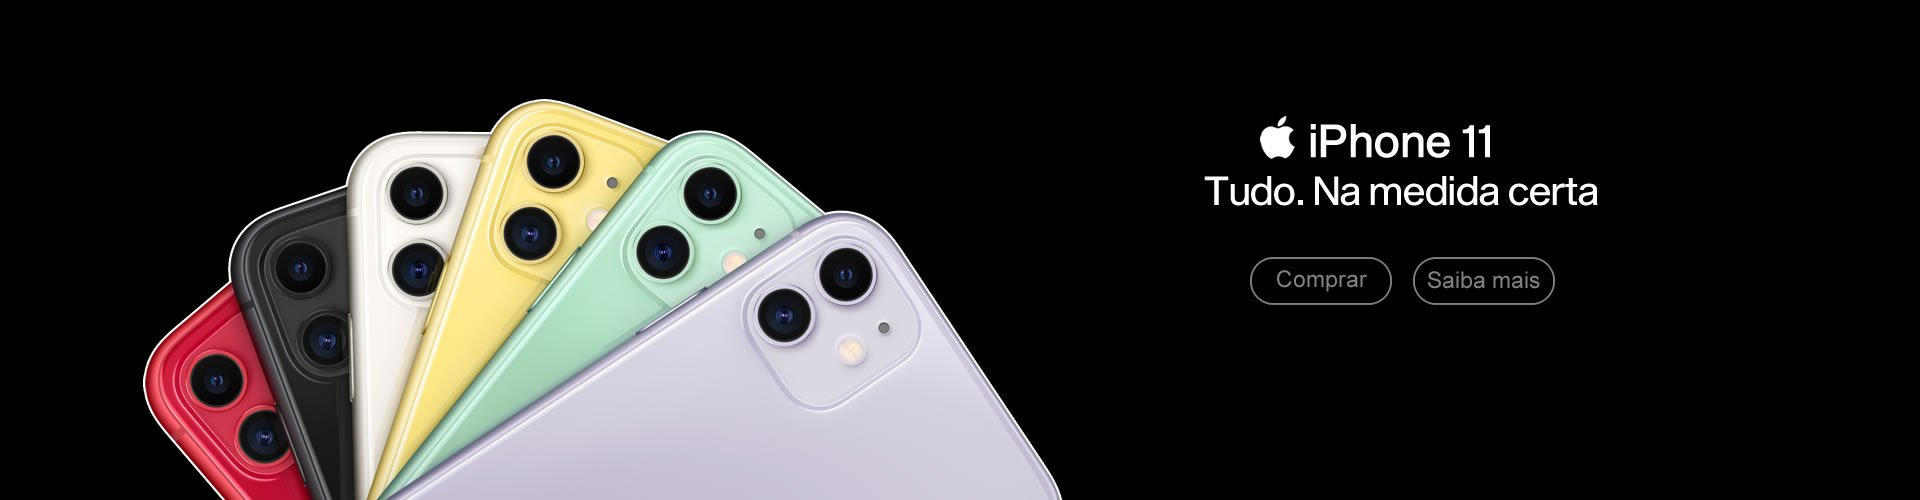 Banner iPhone 11